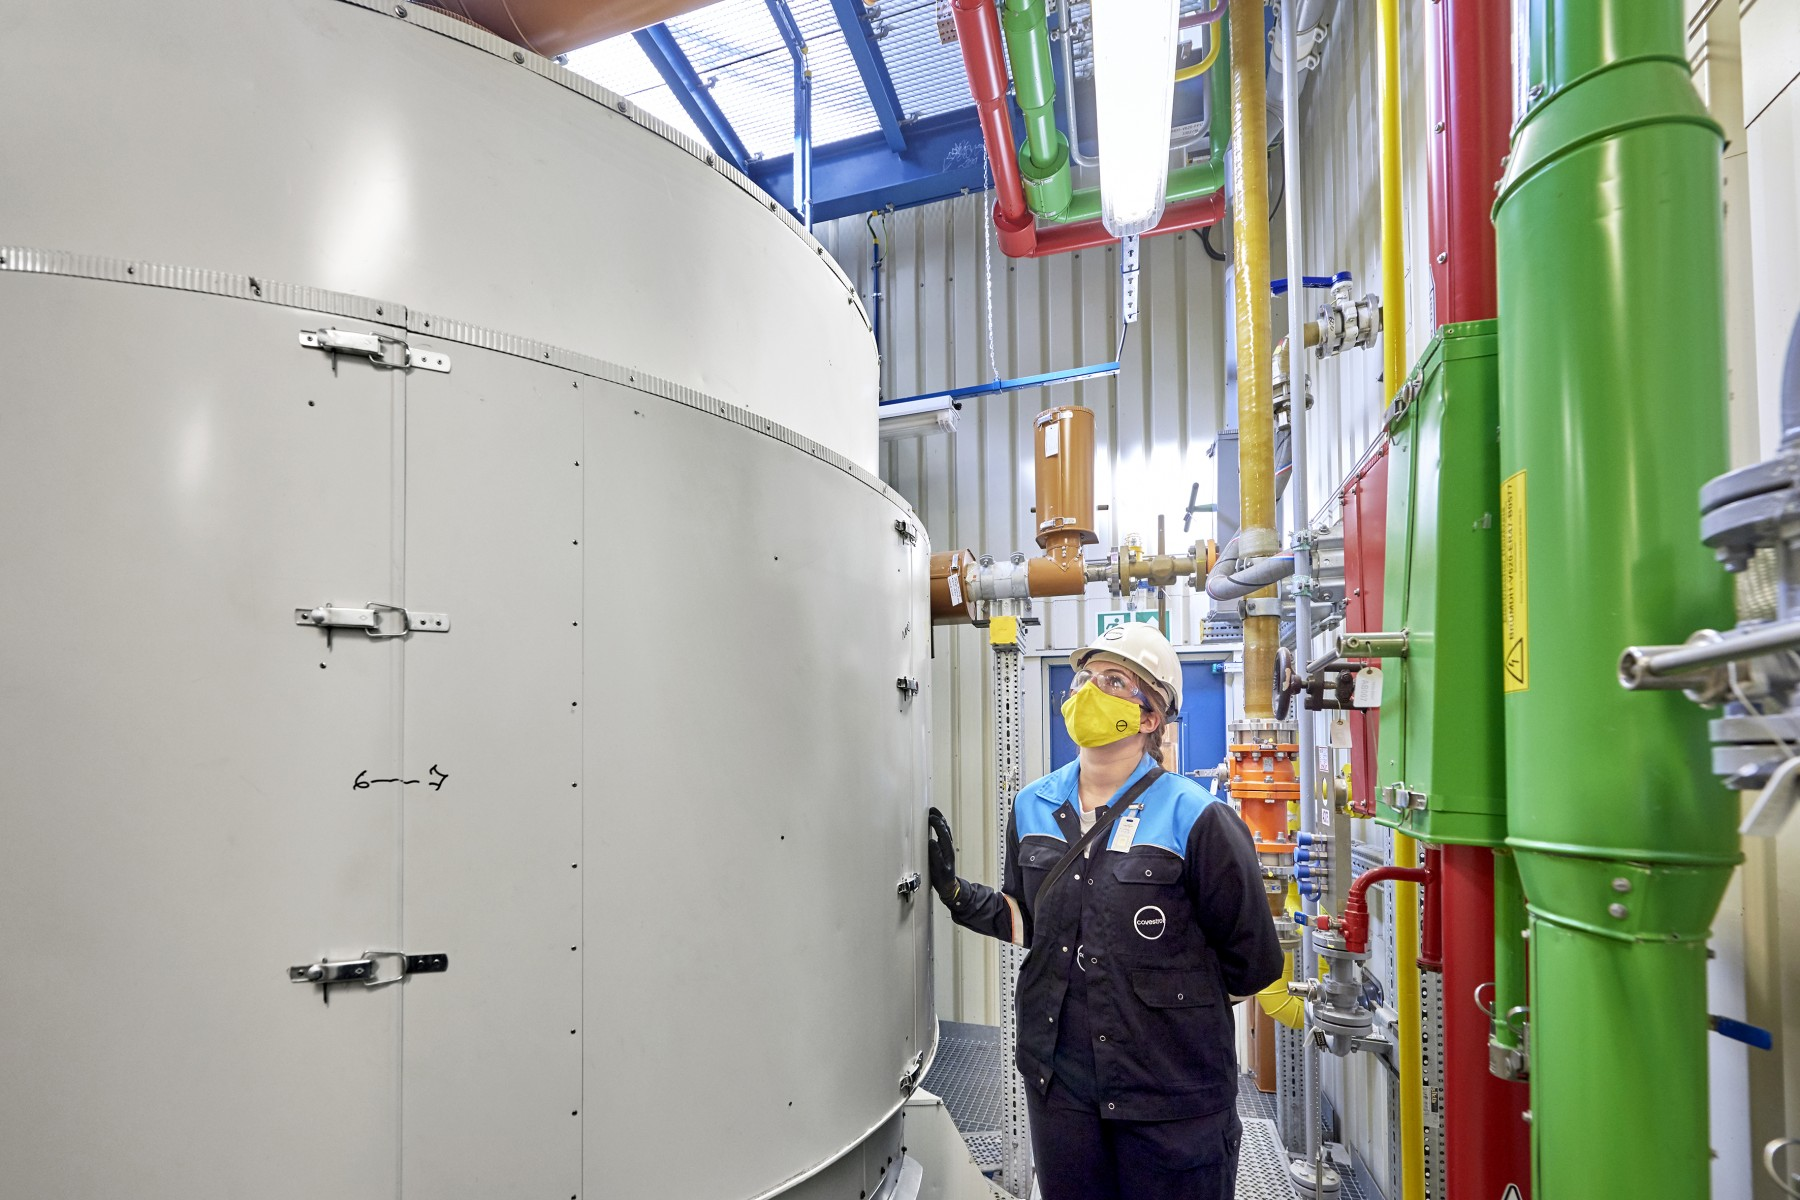 20201116_20201113_Covestro-technology-premiere-for-greater-energy-efficiency-and-climate-protection-in-mdi-production2